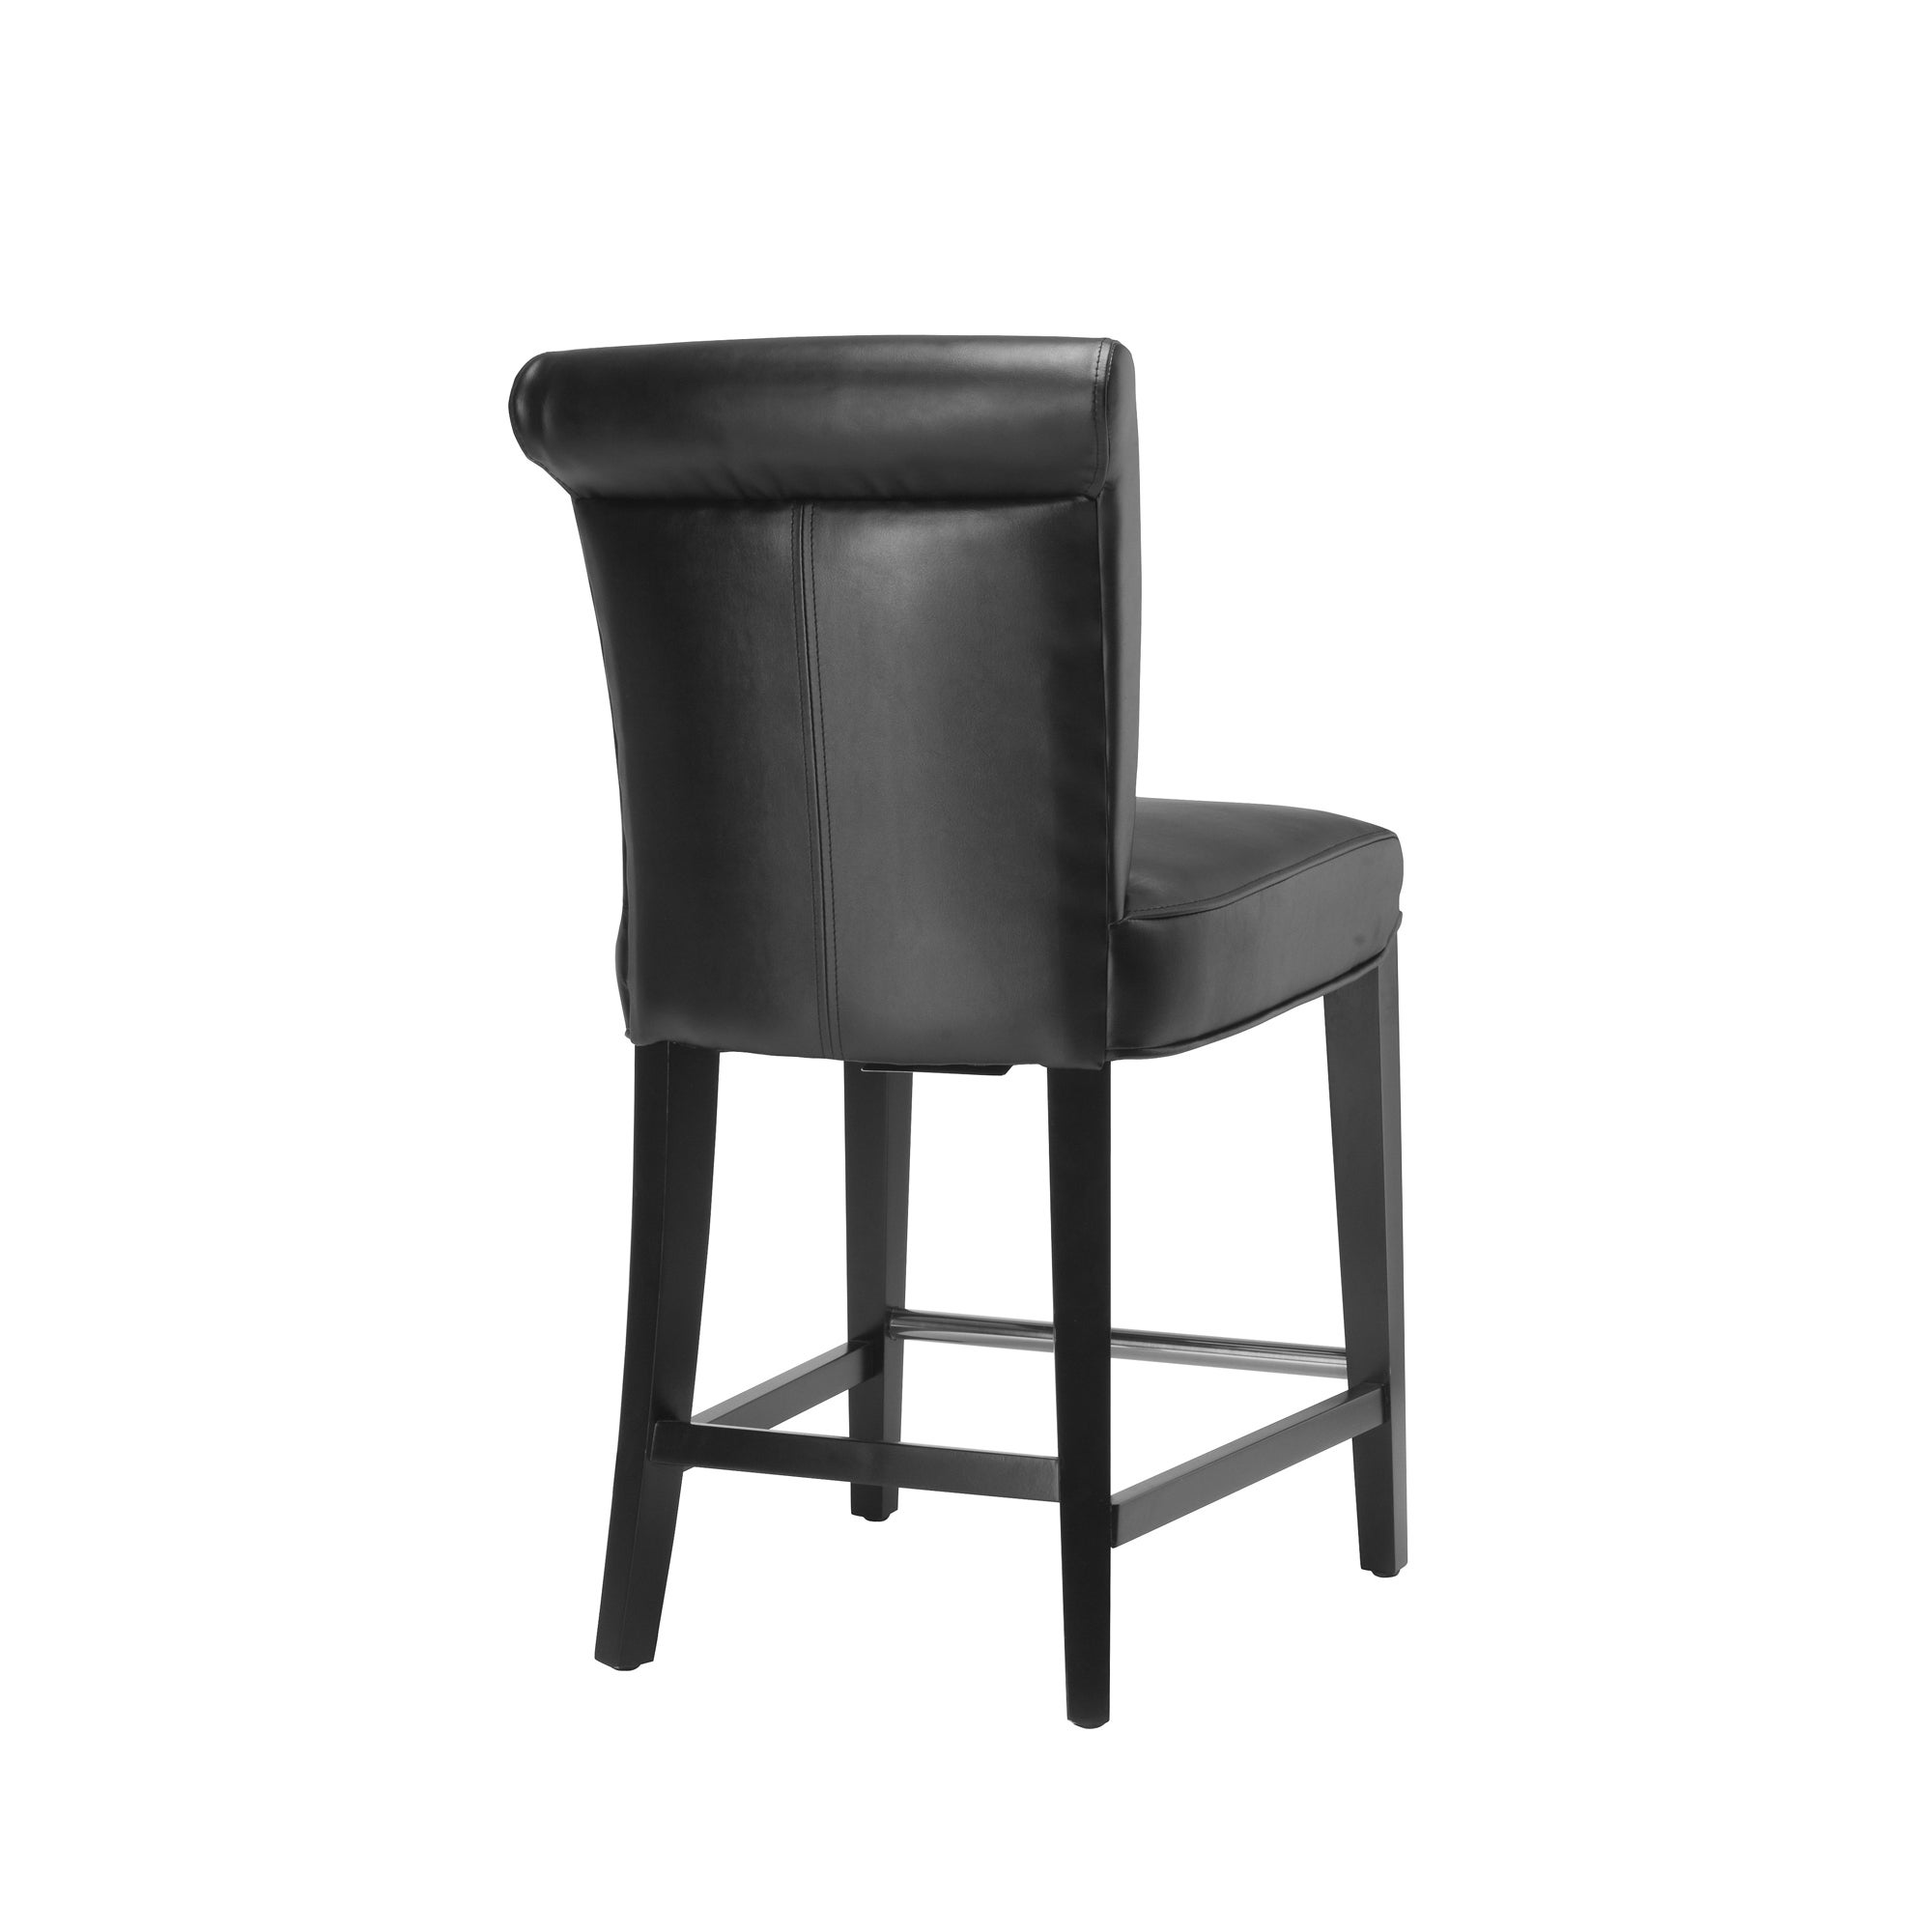 AT HOME by O Madison Black Leather Counter Stool at Sears.com